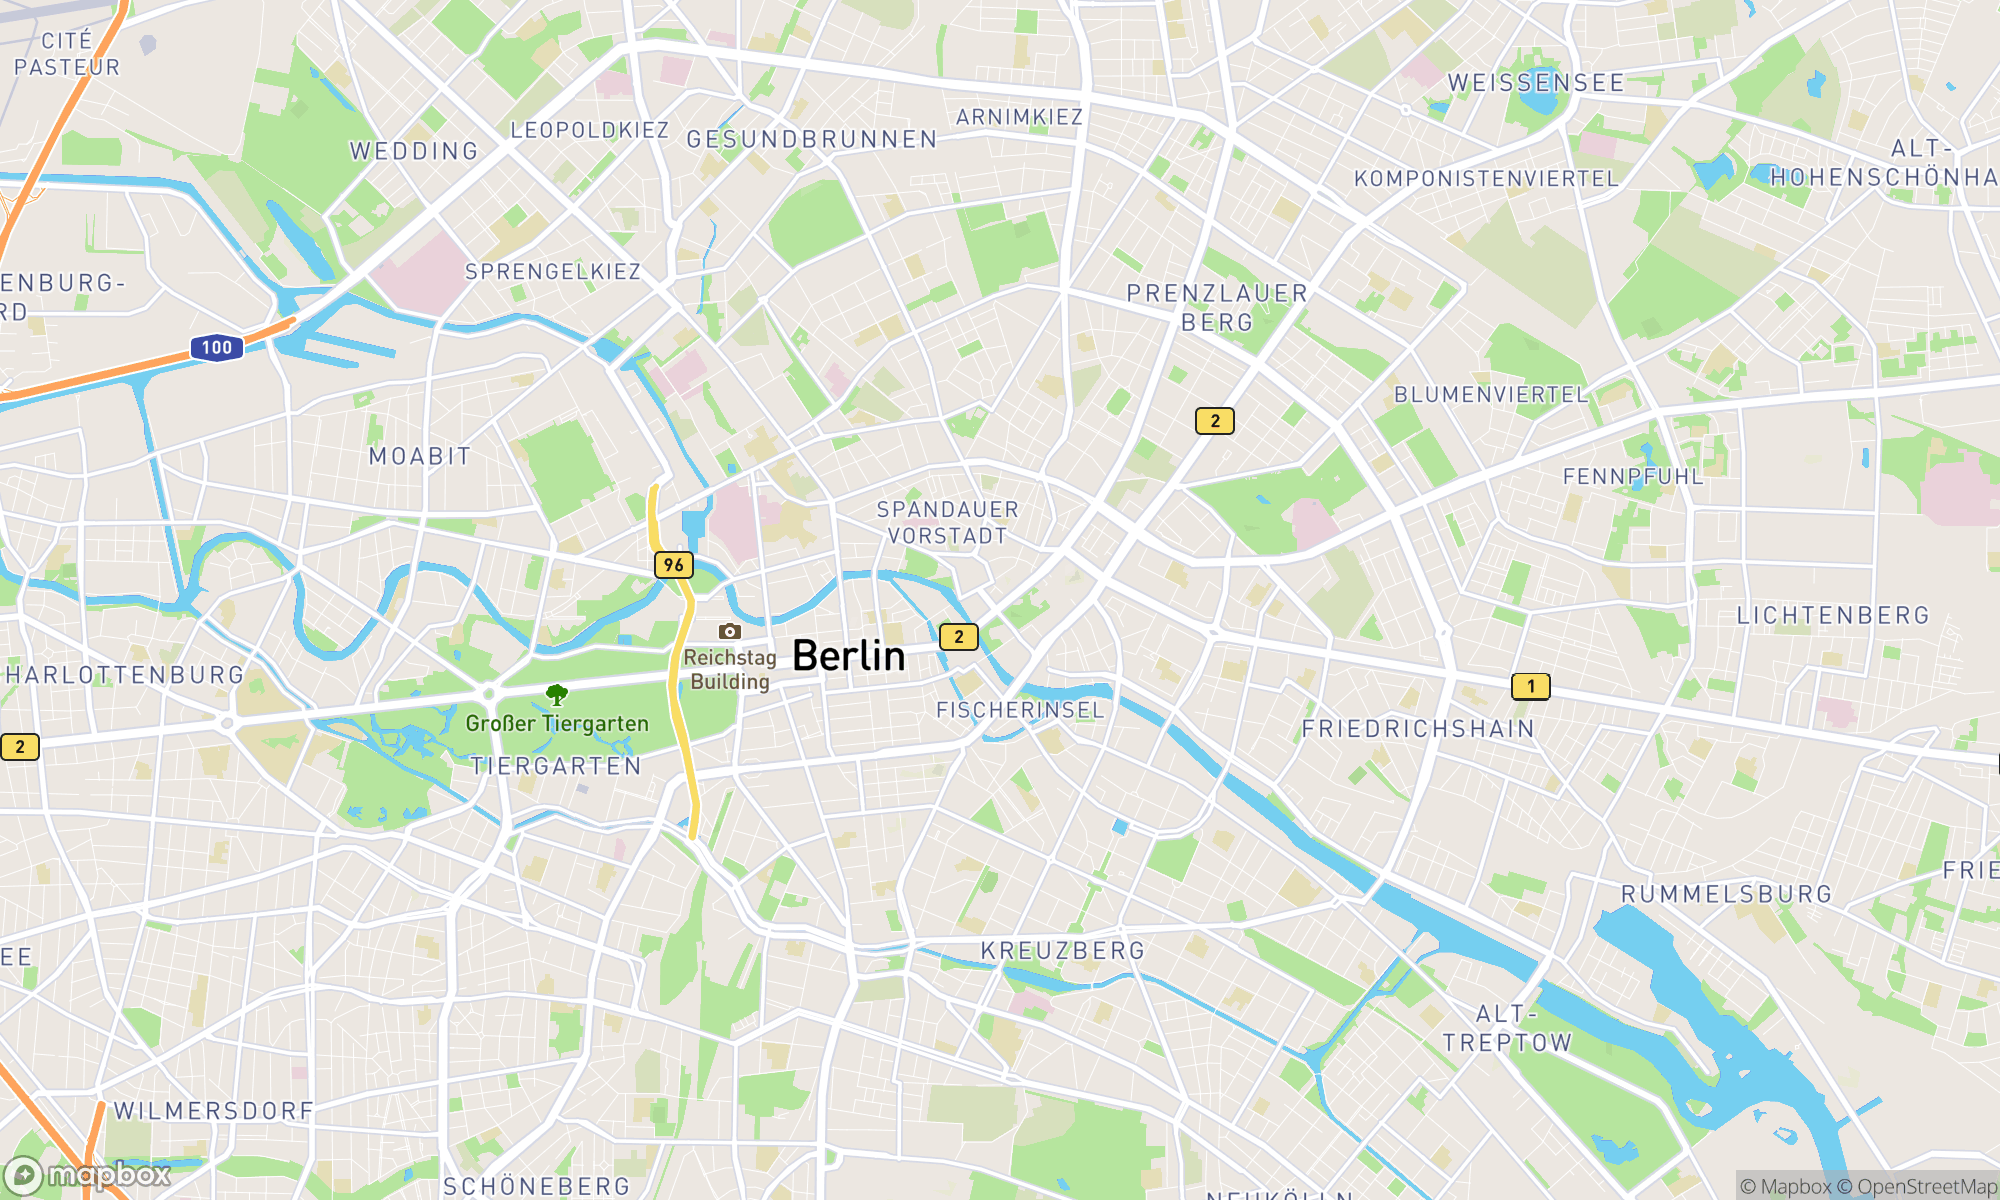 Map of Berlin area